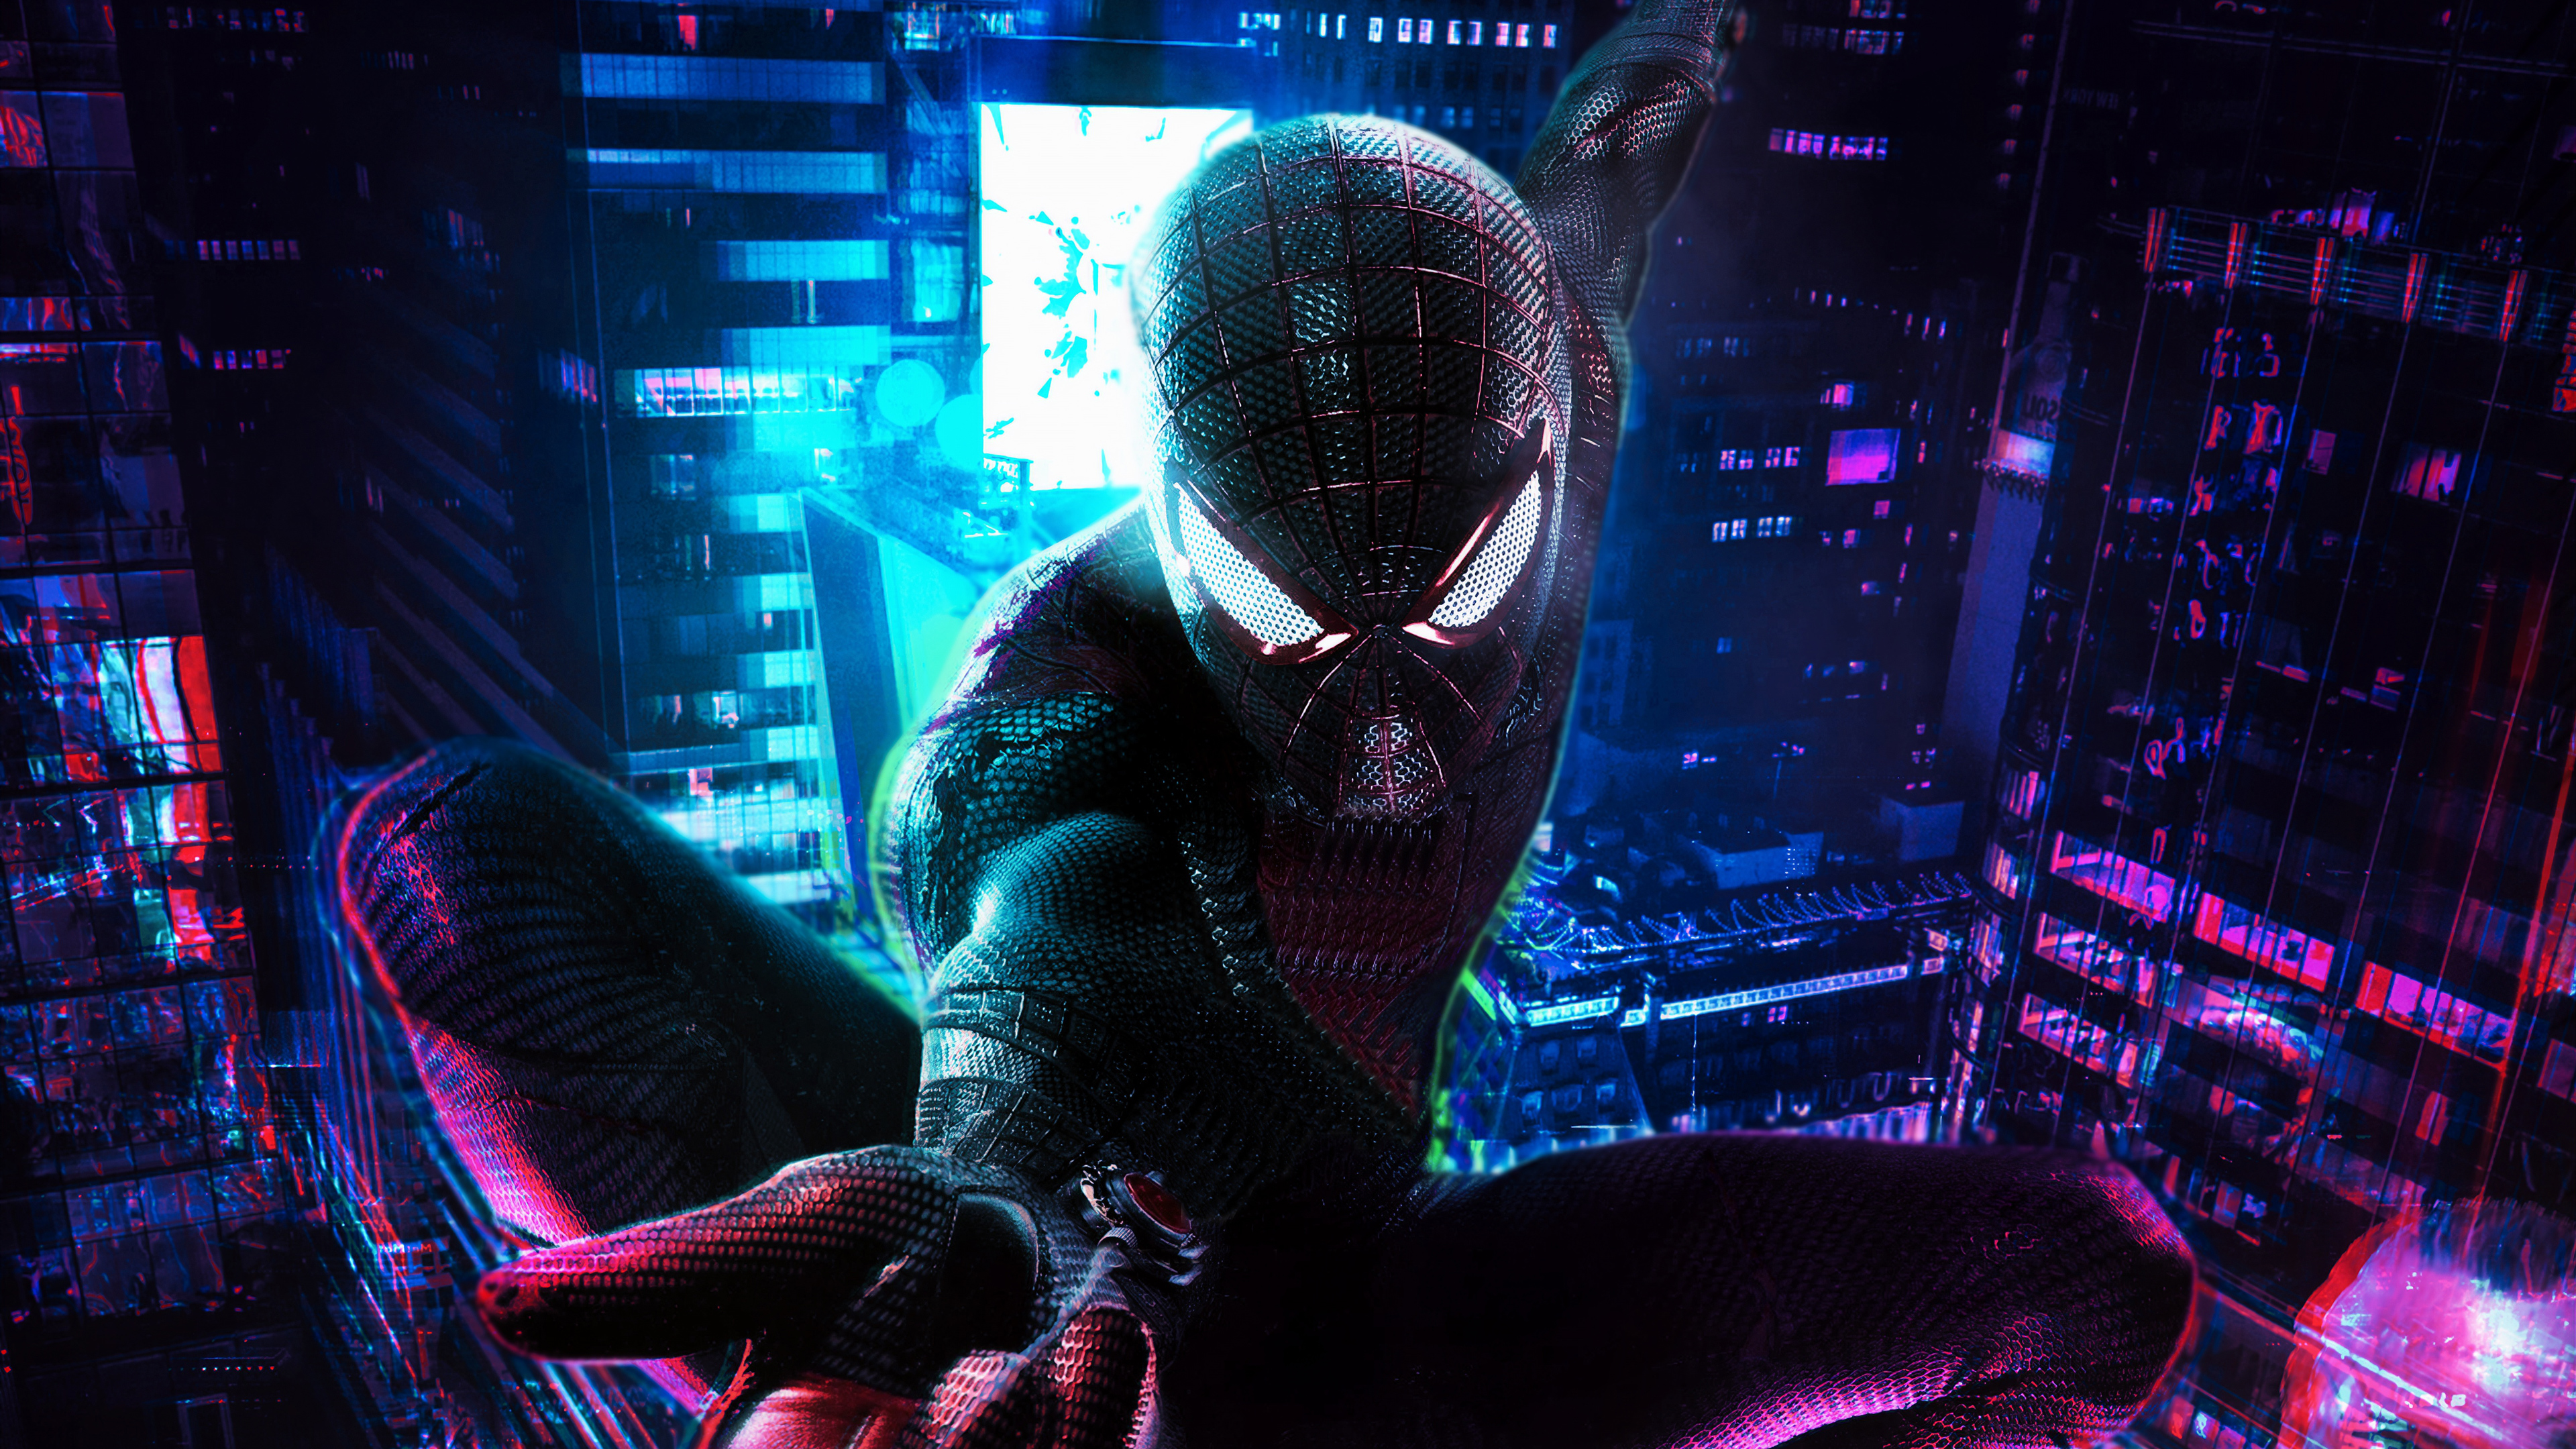 Cyberpunk Spiderman Fanart Wallpaper 4k Ultra Hd Id3239